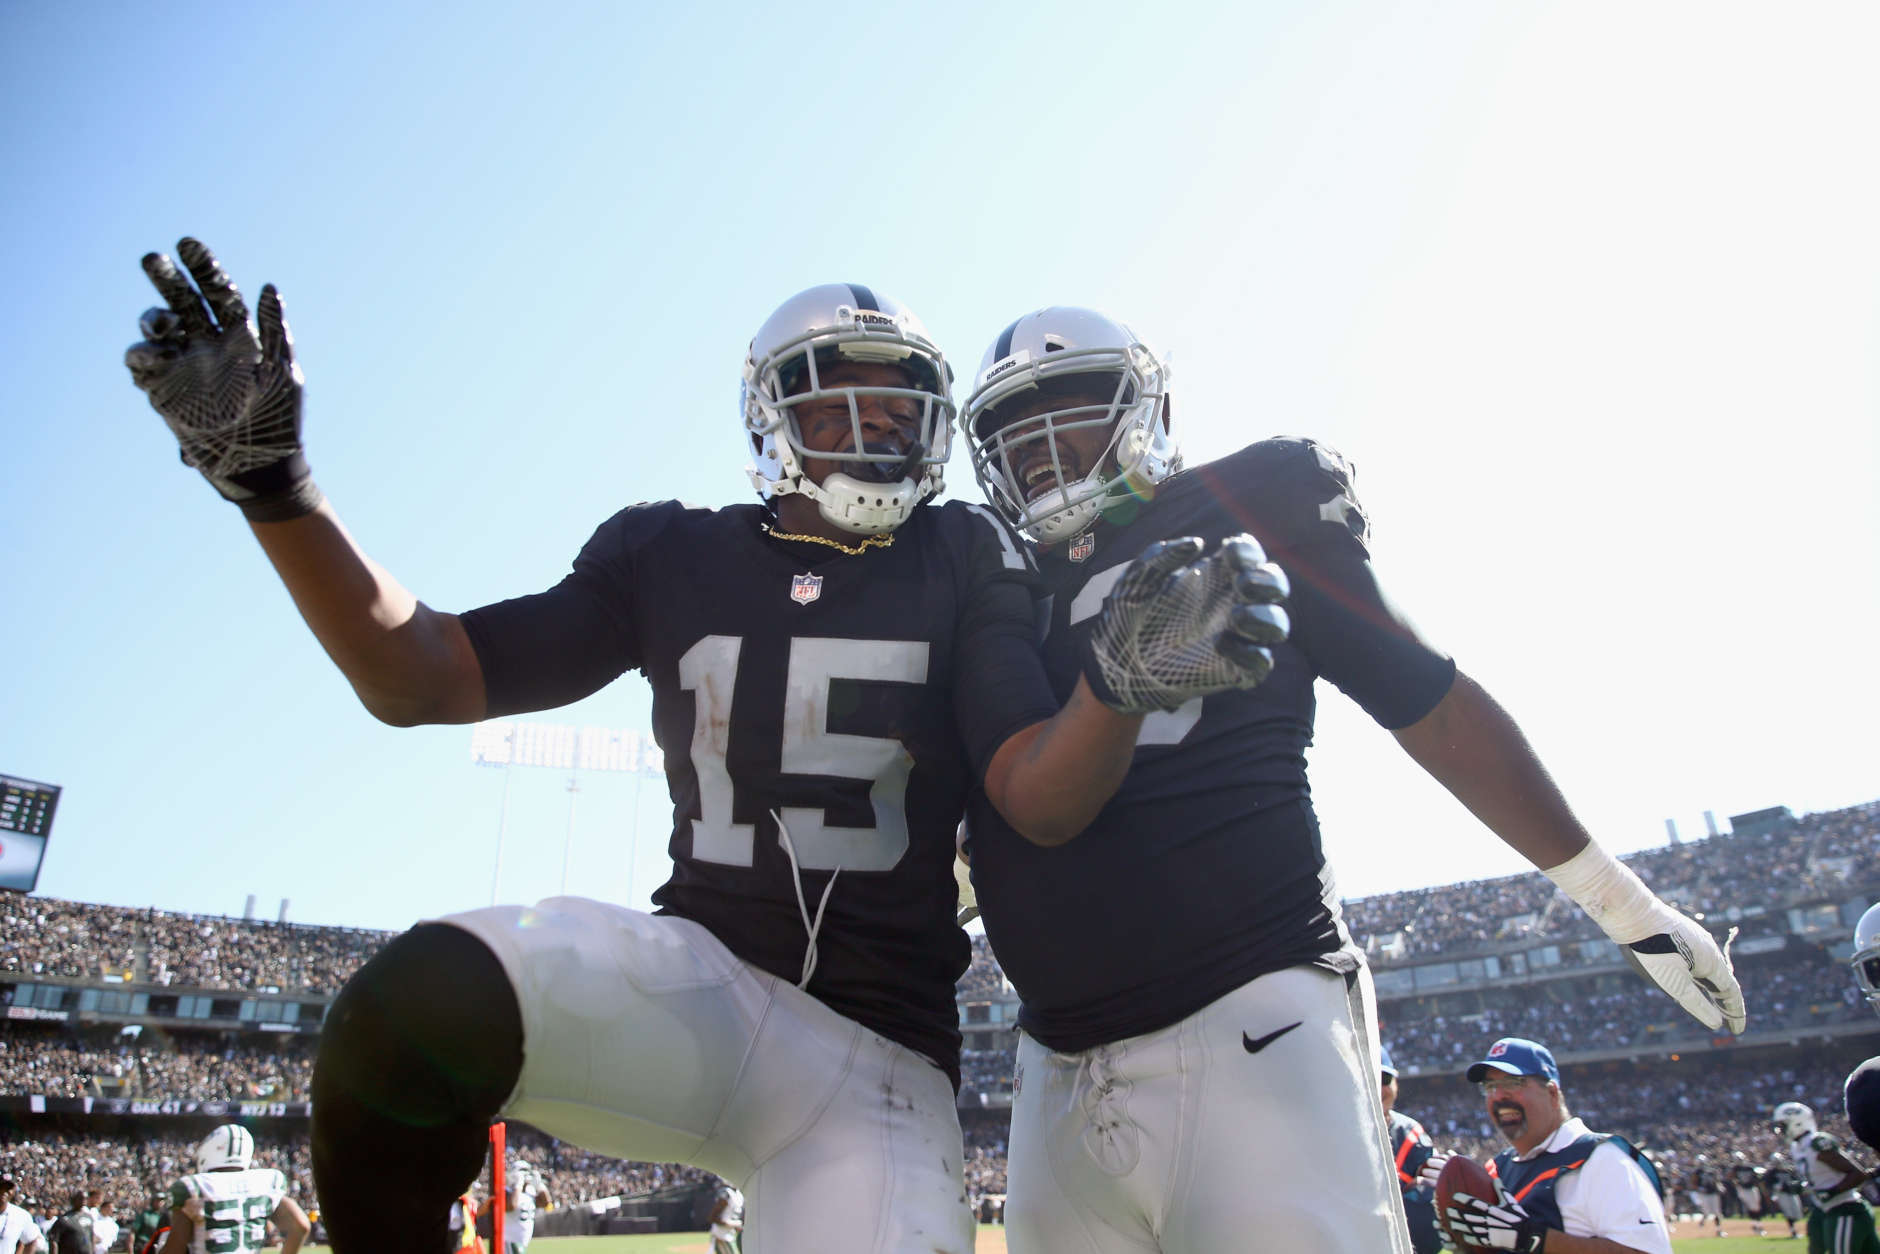 OAKLAND, CA - SEPTEMBER 17:  Michael Crabtree #15 of the Oakland Raiders celebrates with Marshall Newhouse #73 and he Crabtree scored a touchdown against the New York Jets at Oakland-Alameda County Coliseum on September 17, 2017 in Oakland, California.  (Photo by Ezra Shaw/Getty Images)